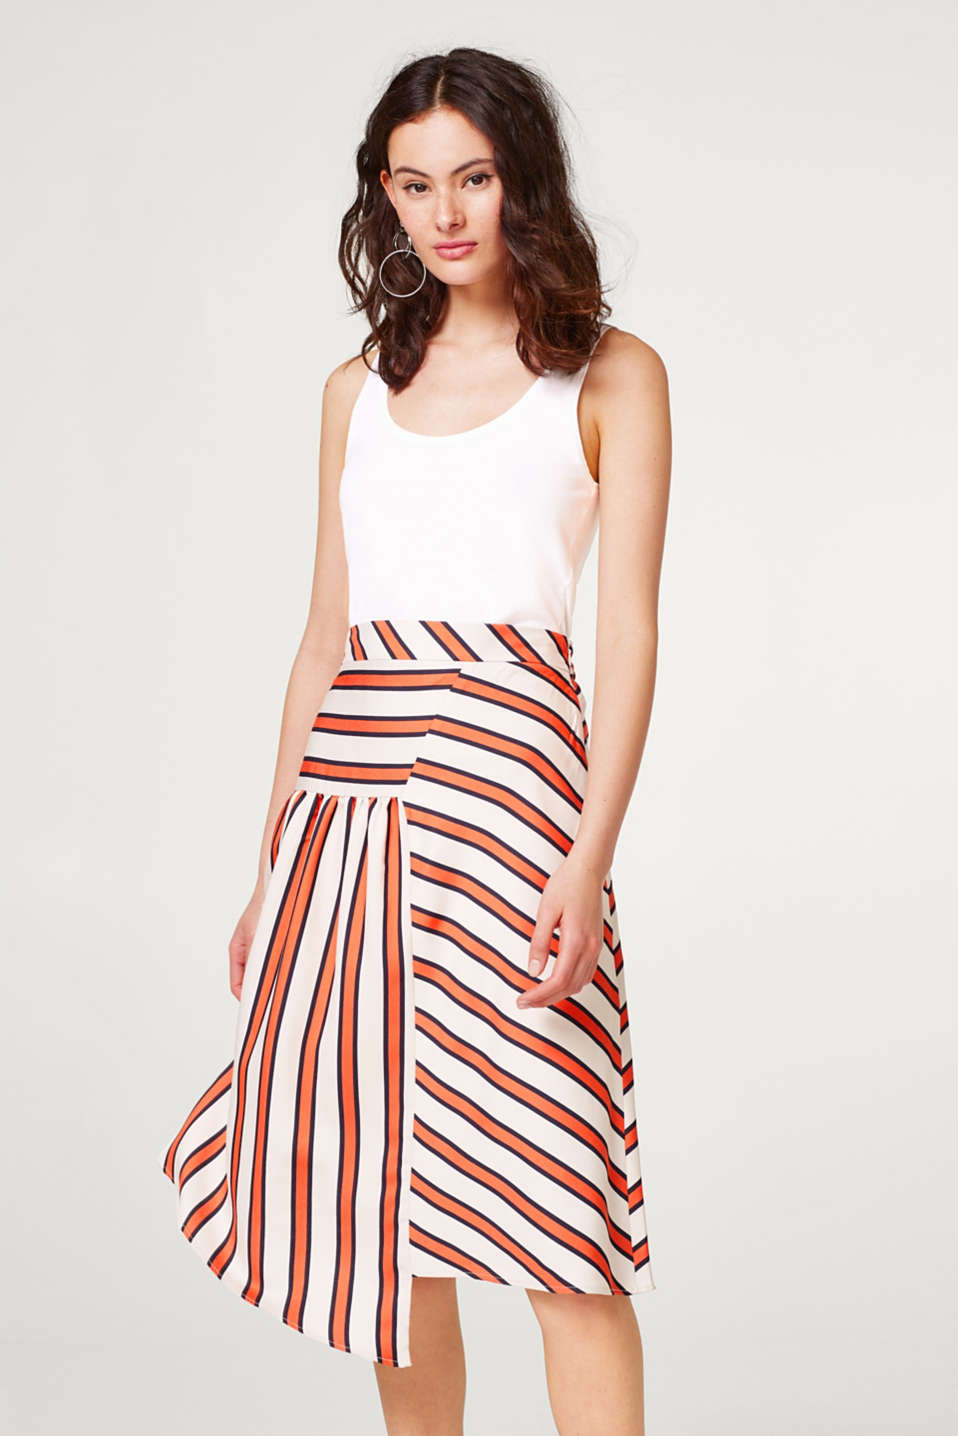 Esprit - Flowing skirt in a new striped look